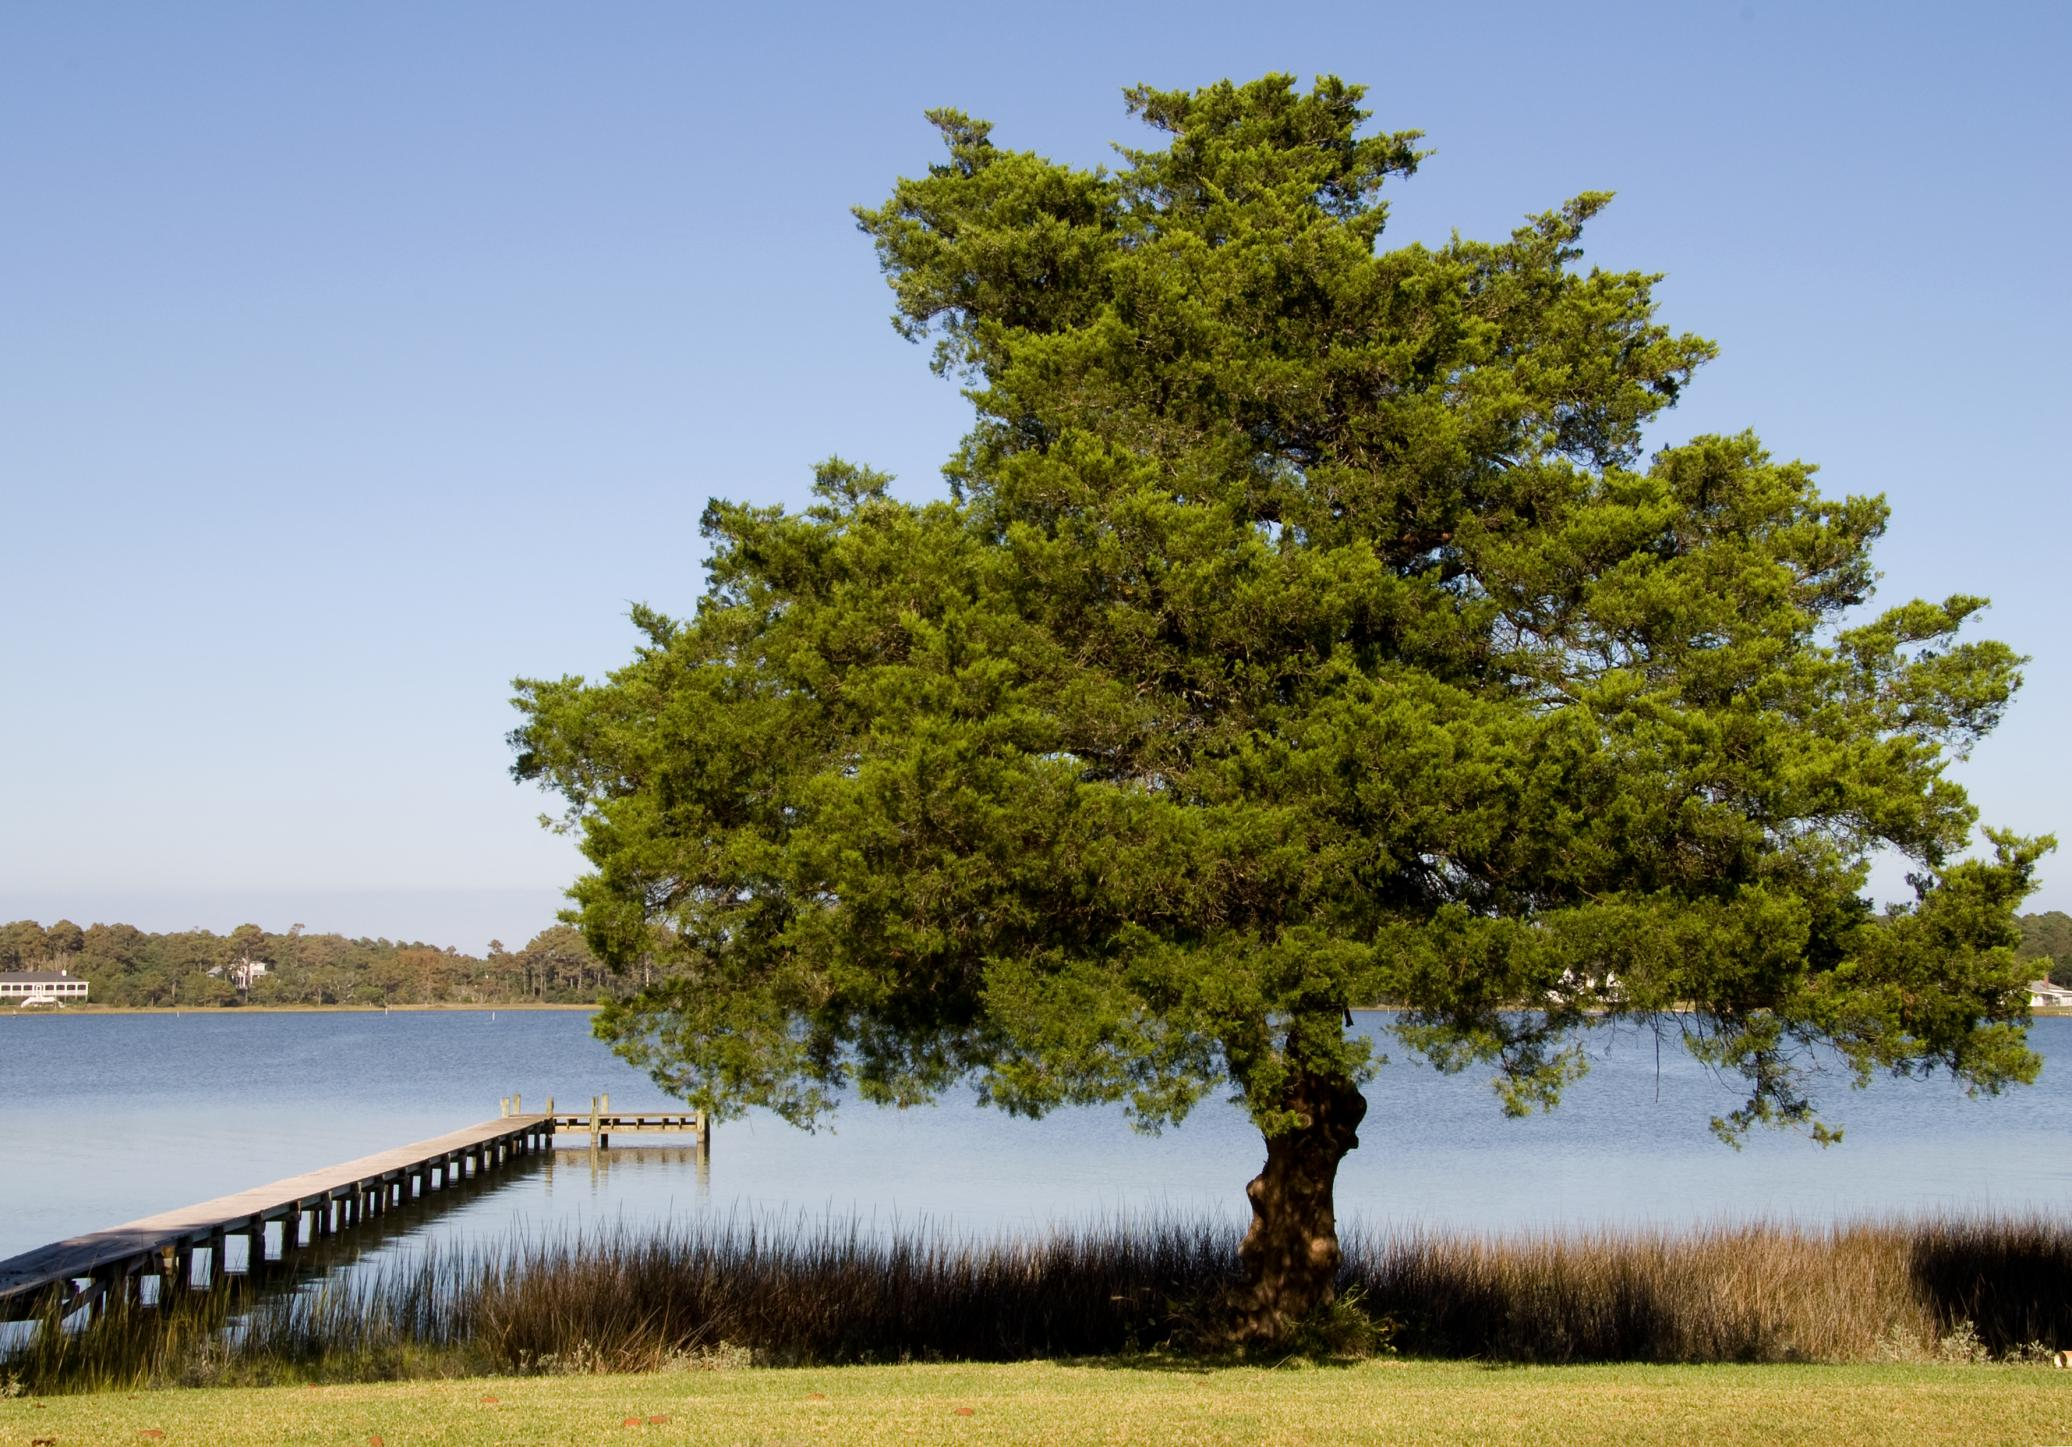 a tree on the lake